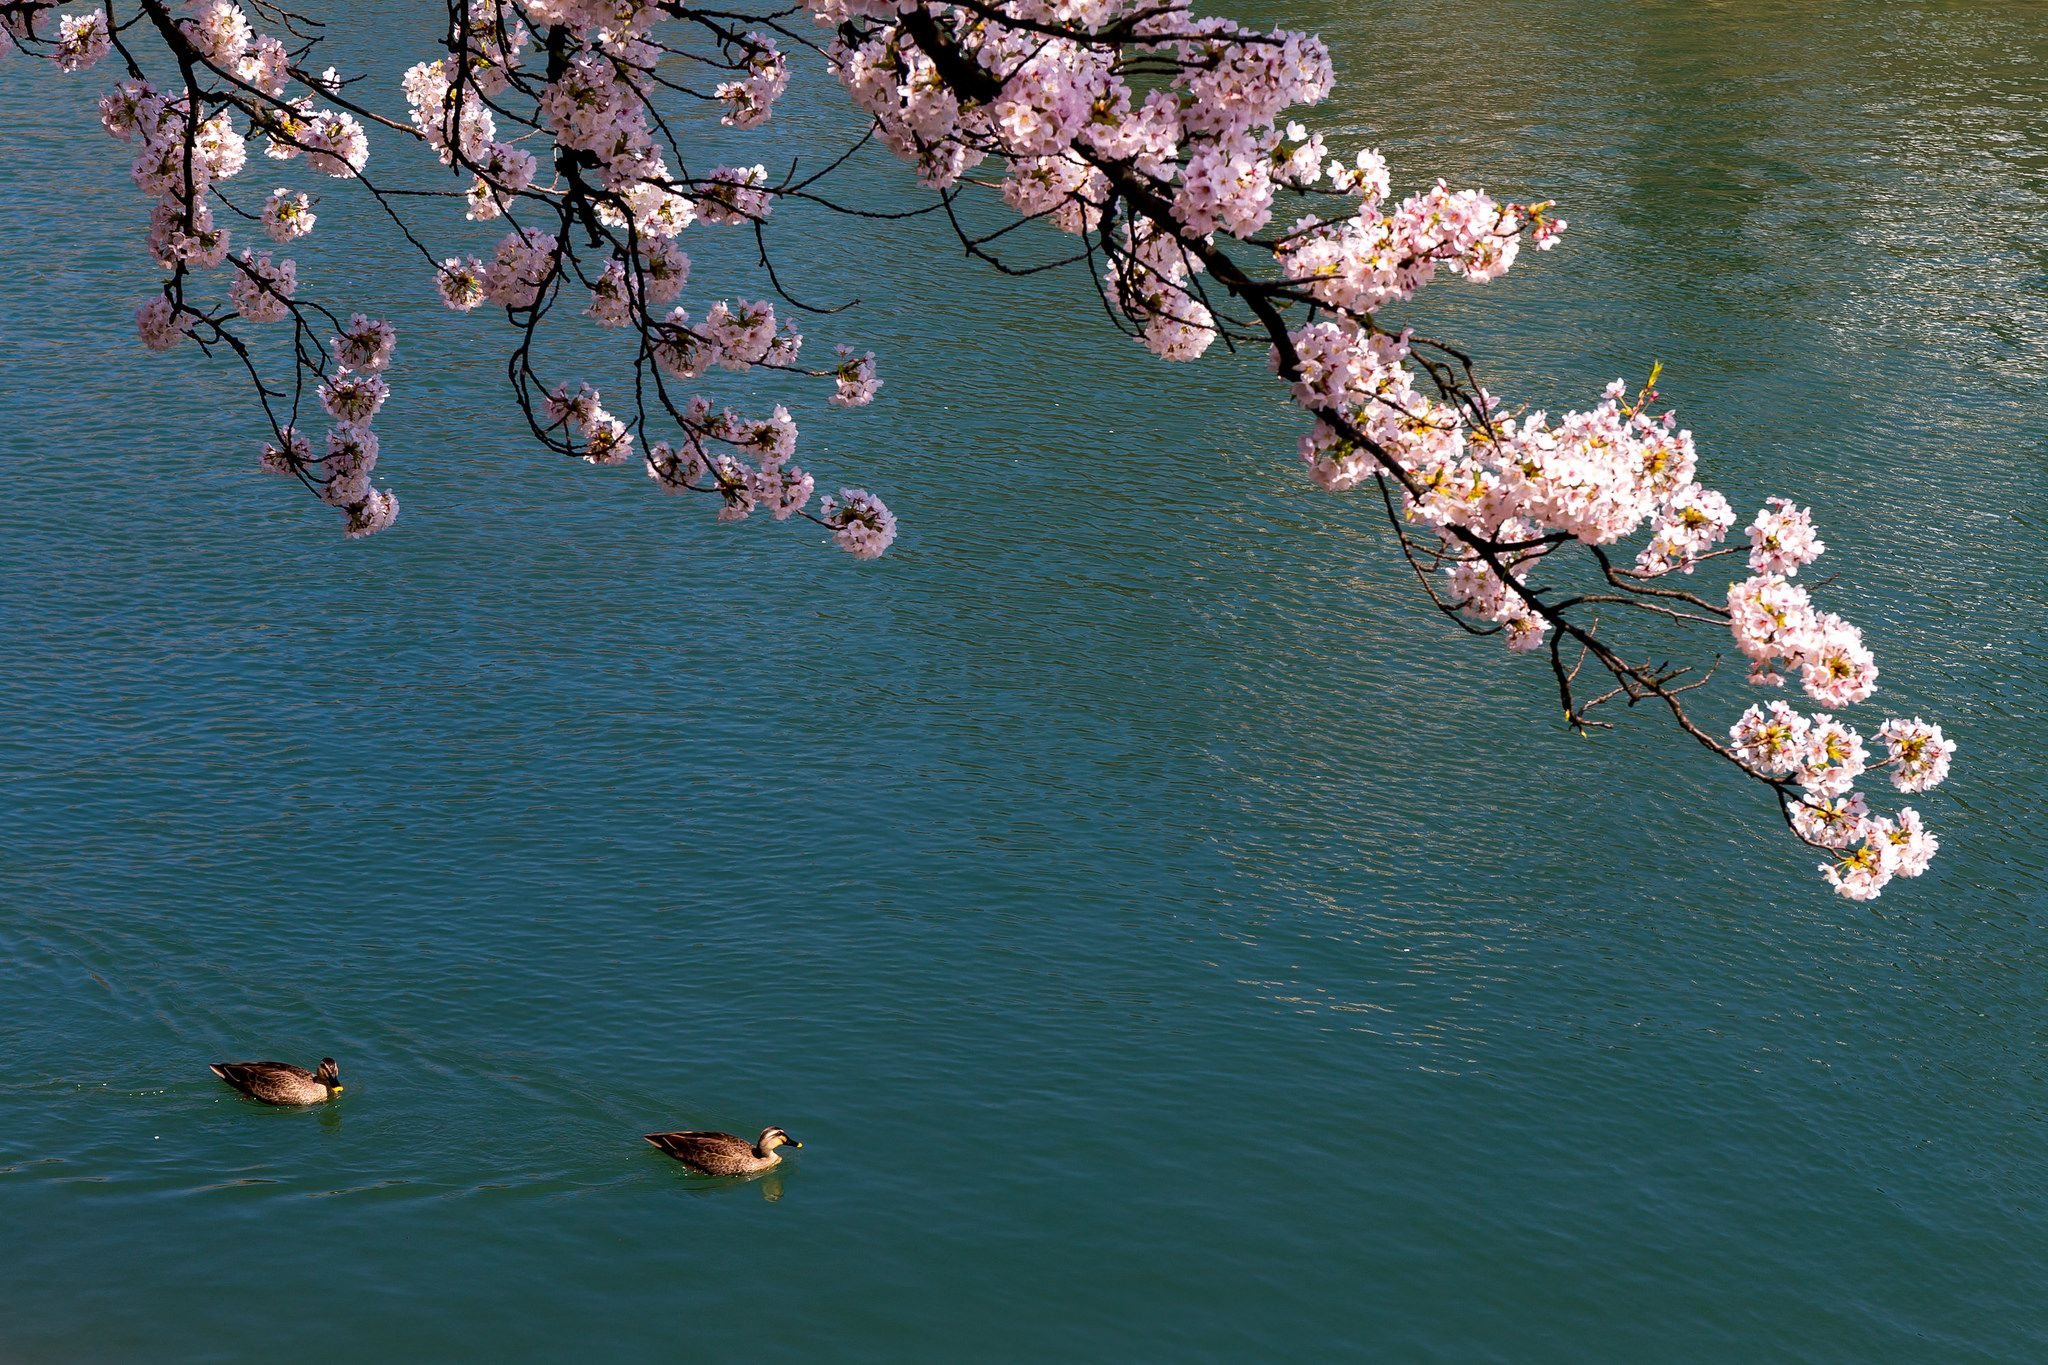 https://flic.kr/p/AB46rx | 浅野川 - 金沢 / Asano-gawa River in Kanazawa | I want to introduce wonderful Japan to the world.